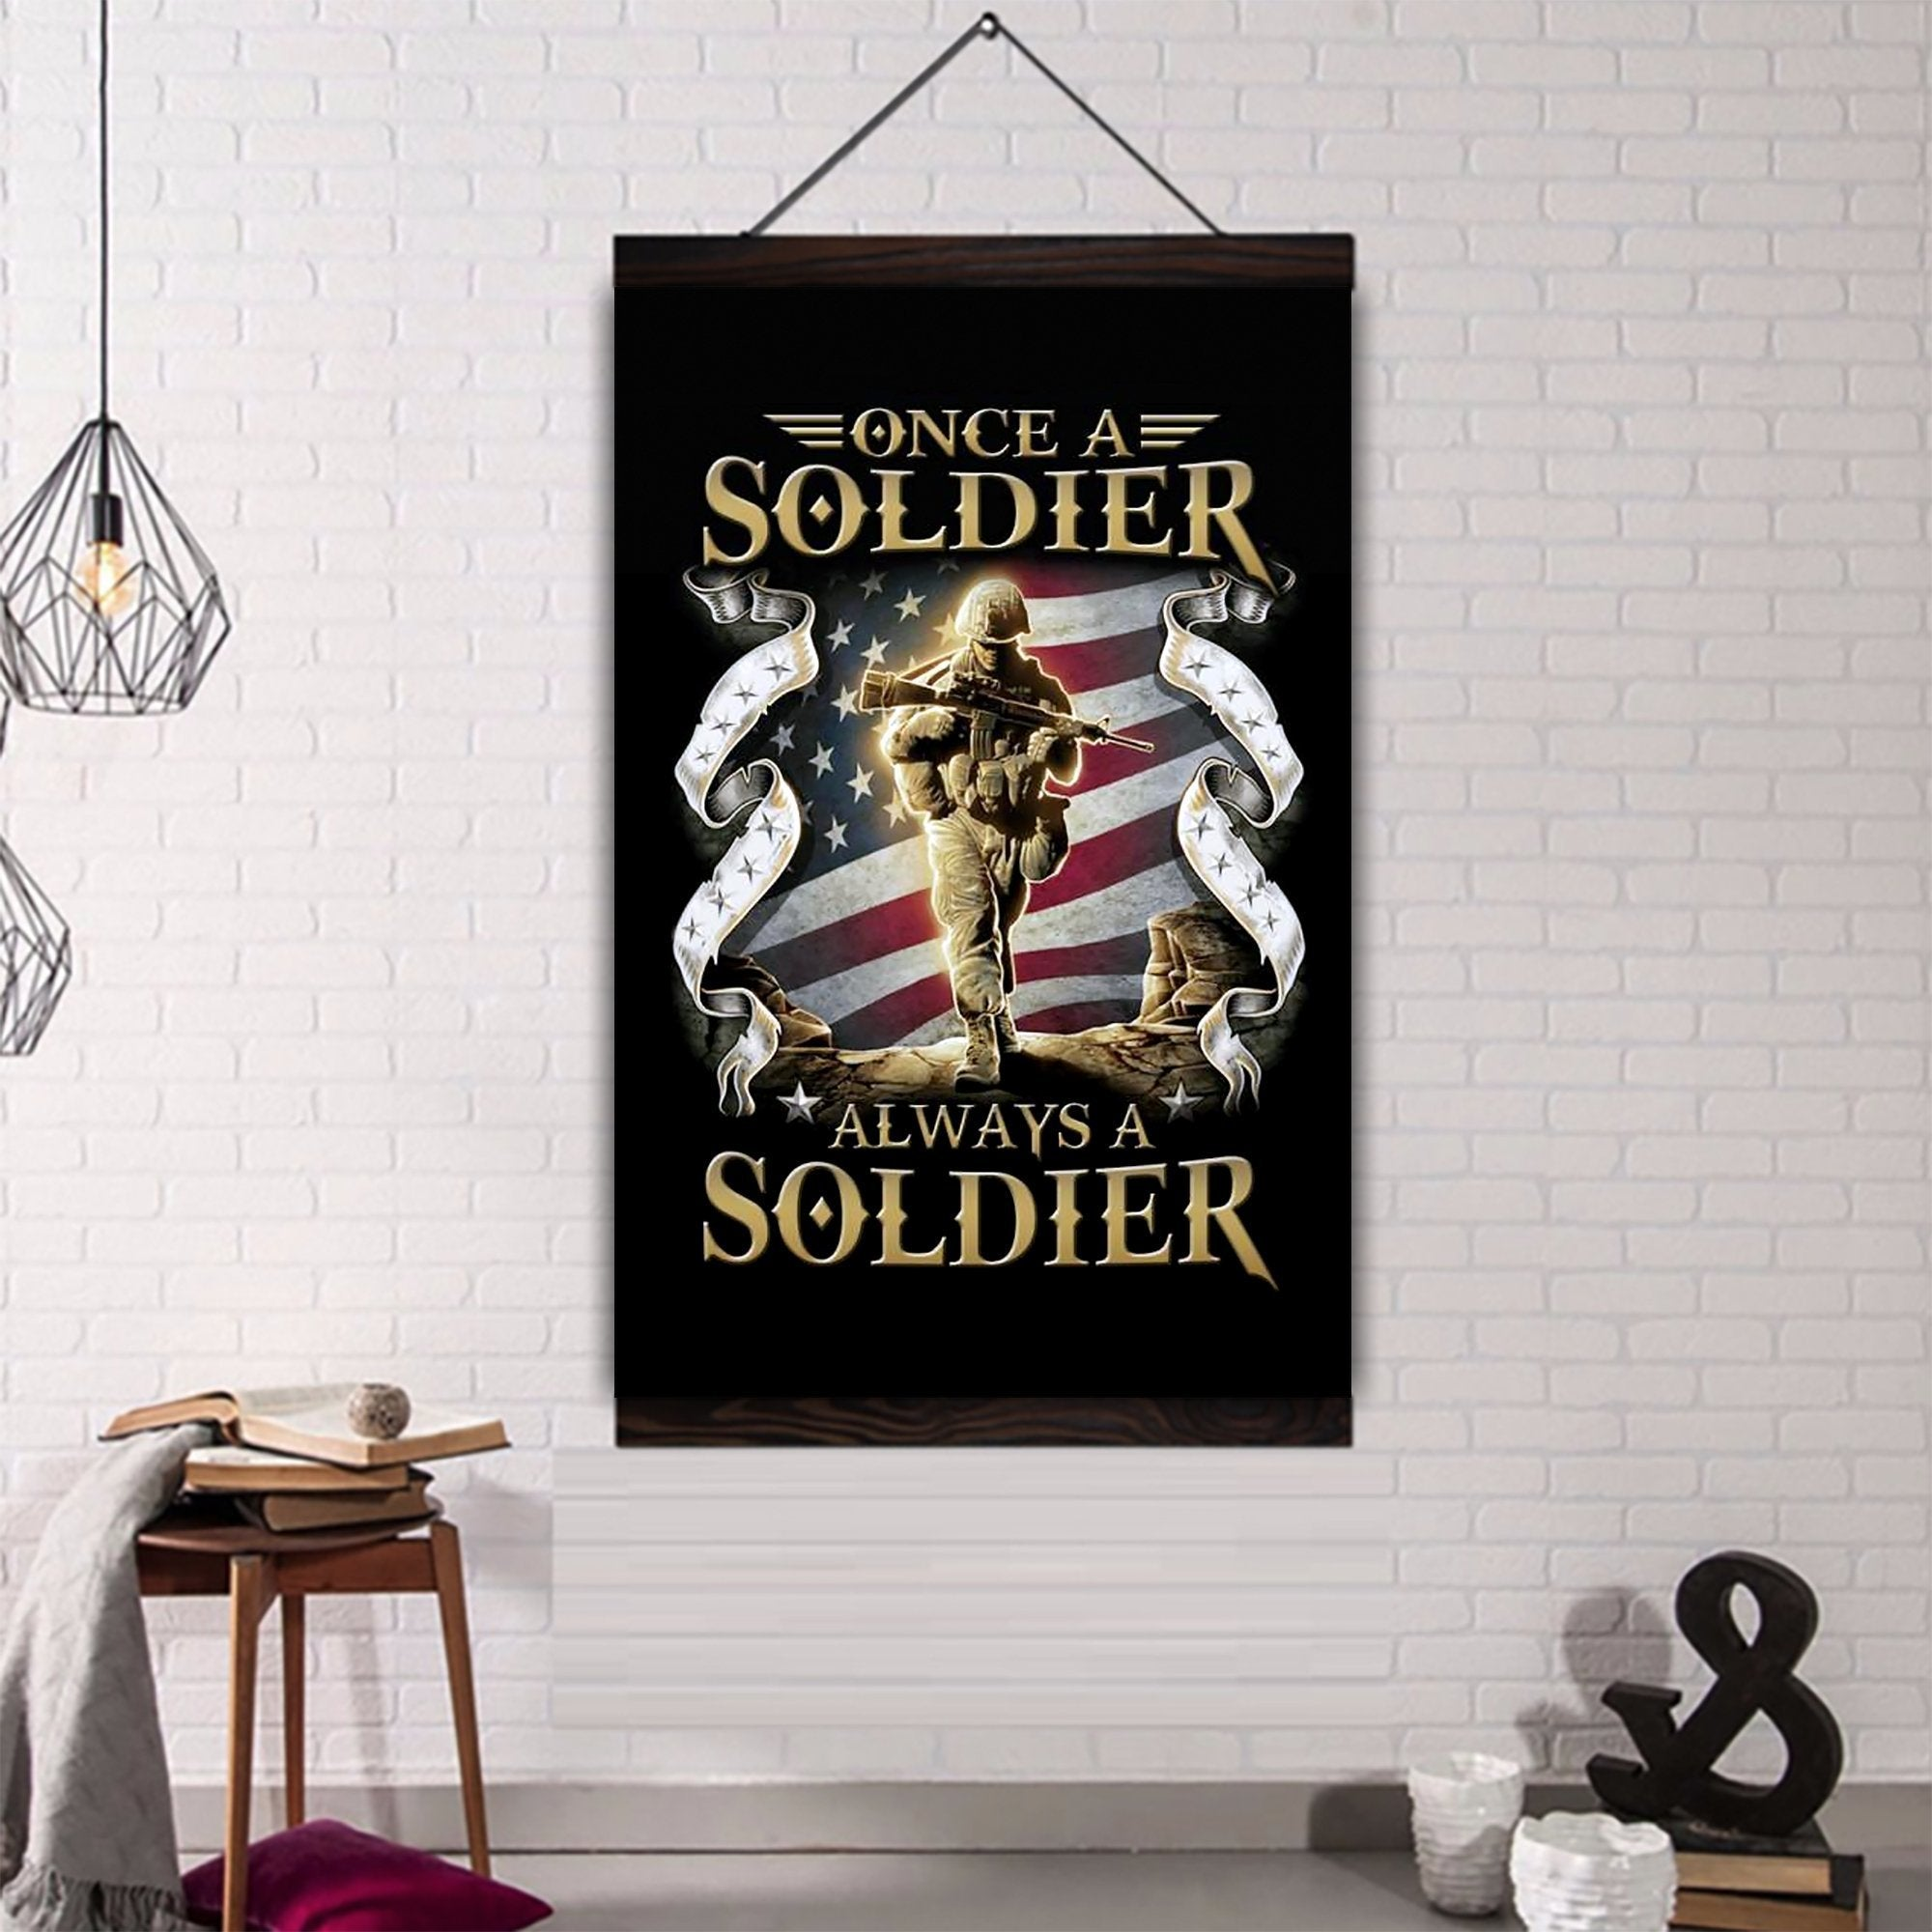 (CV209) soldier canvas with the wood frame - once a soldier always a soldier